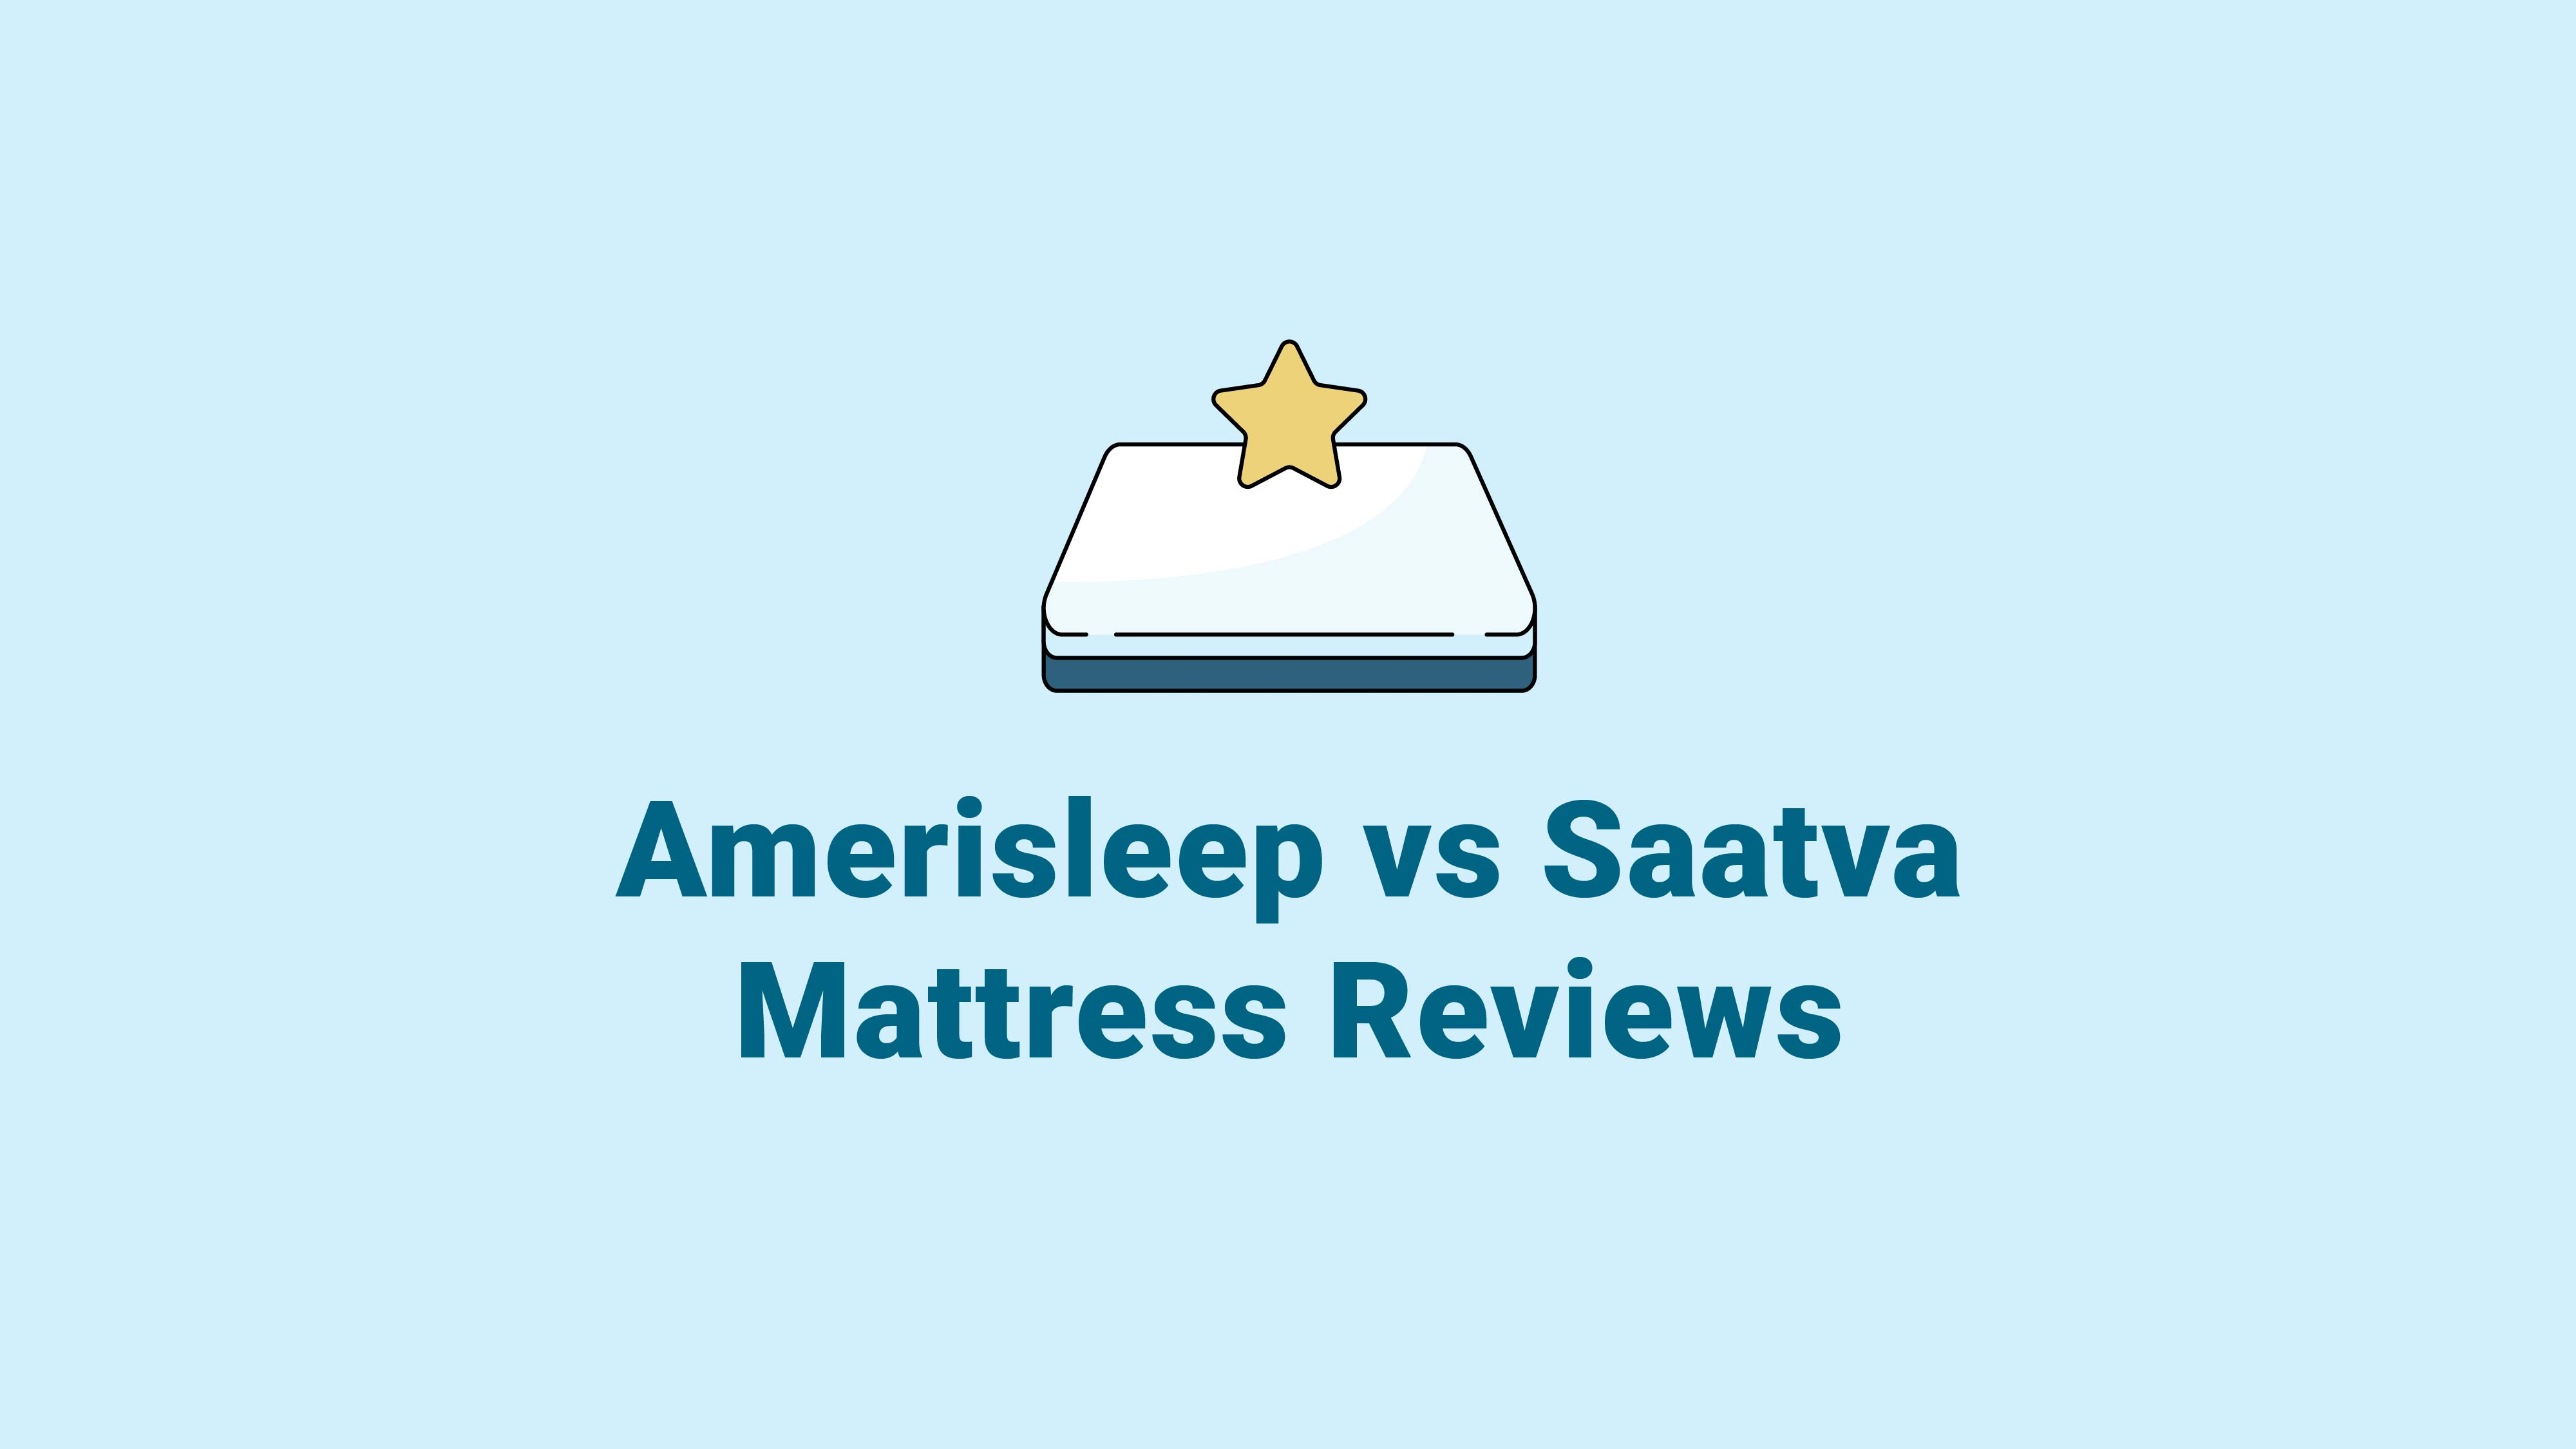 Amerisleep vs. Saatva Mattress Reviews